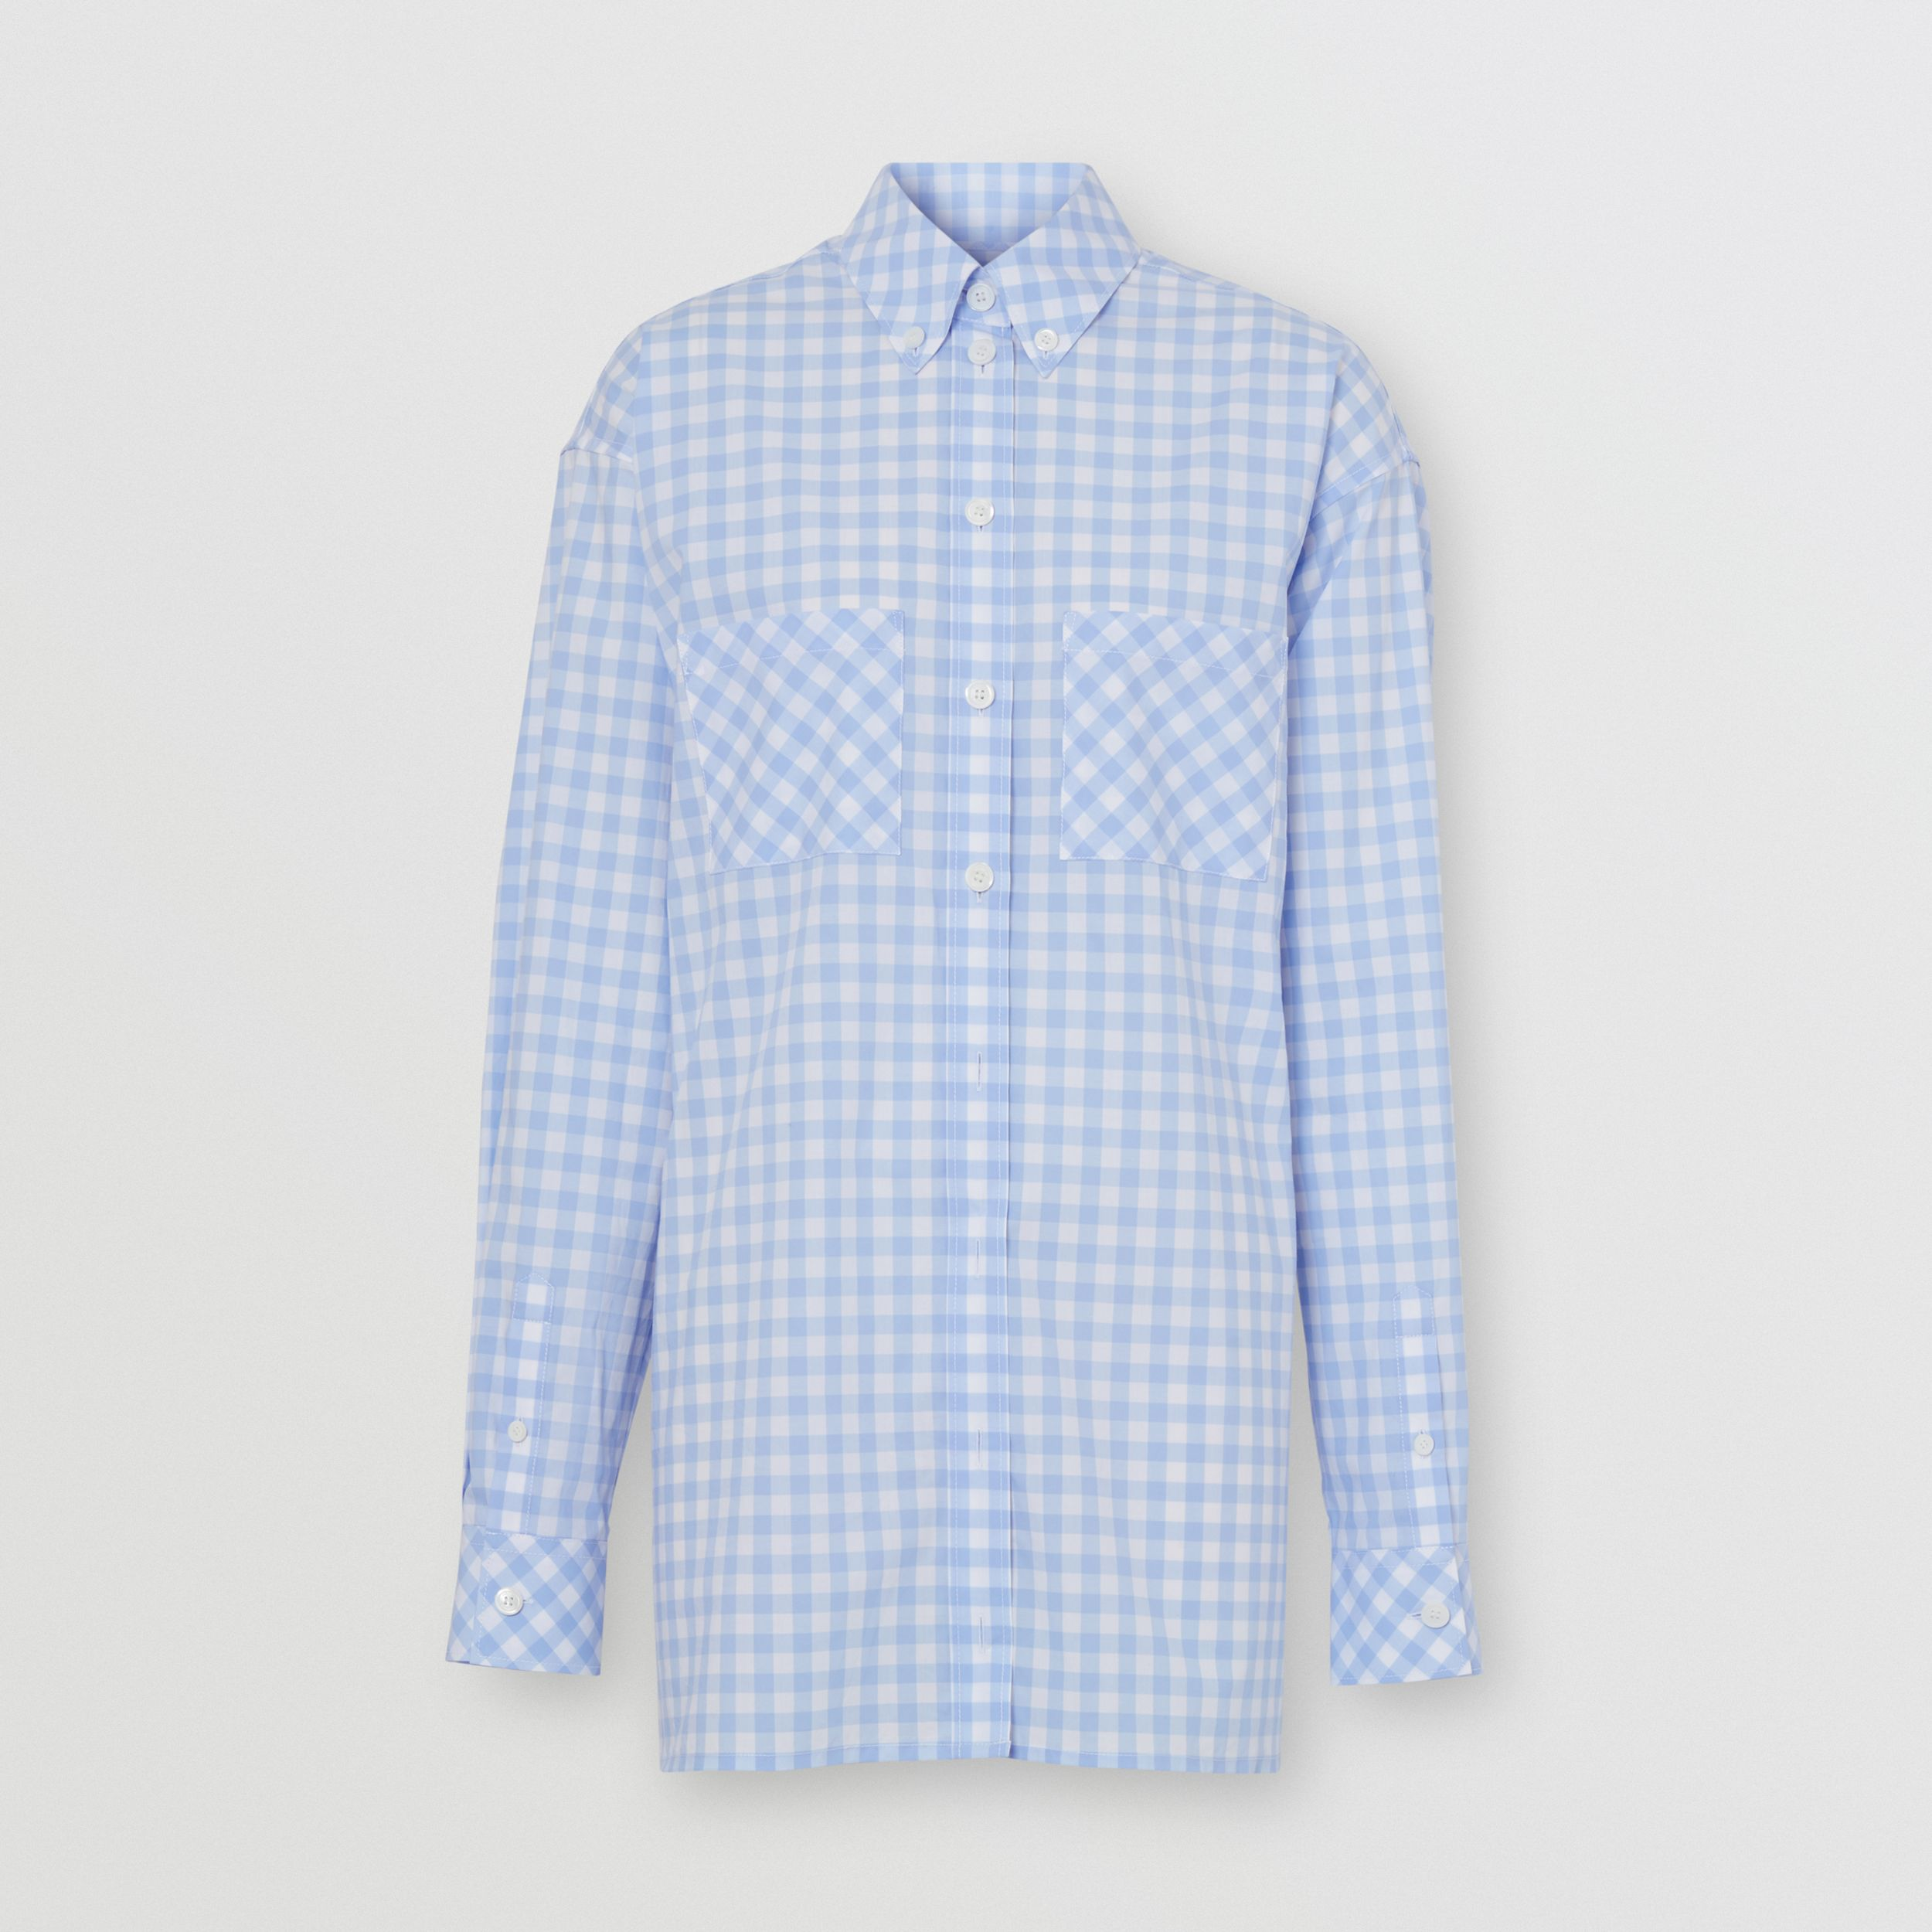 Gingham Cotton Poplin Shirt Dress in Pale Blue - Women | Burberry - 4